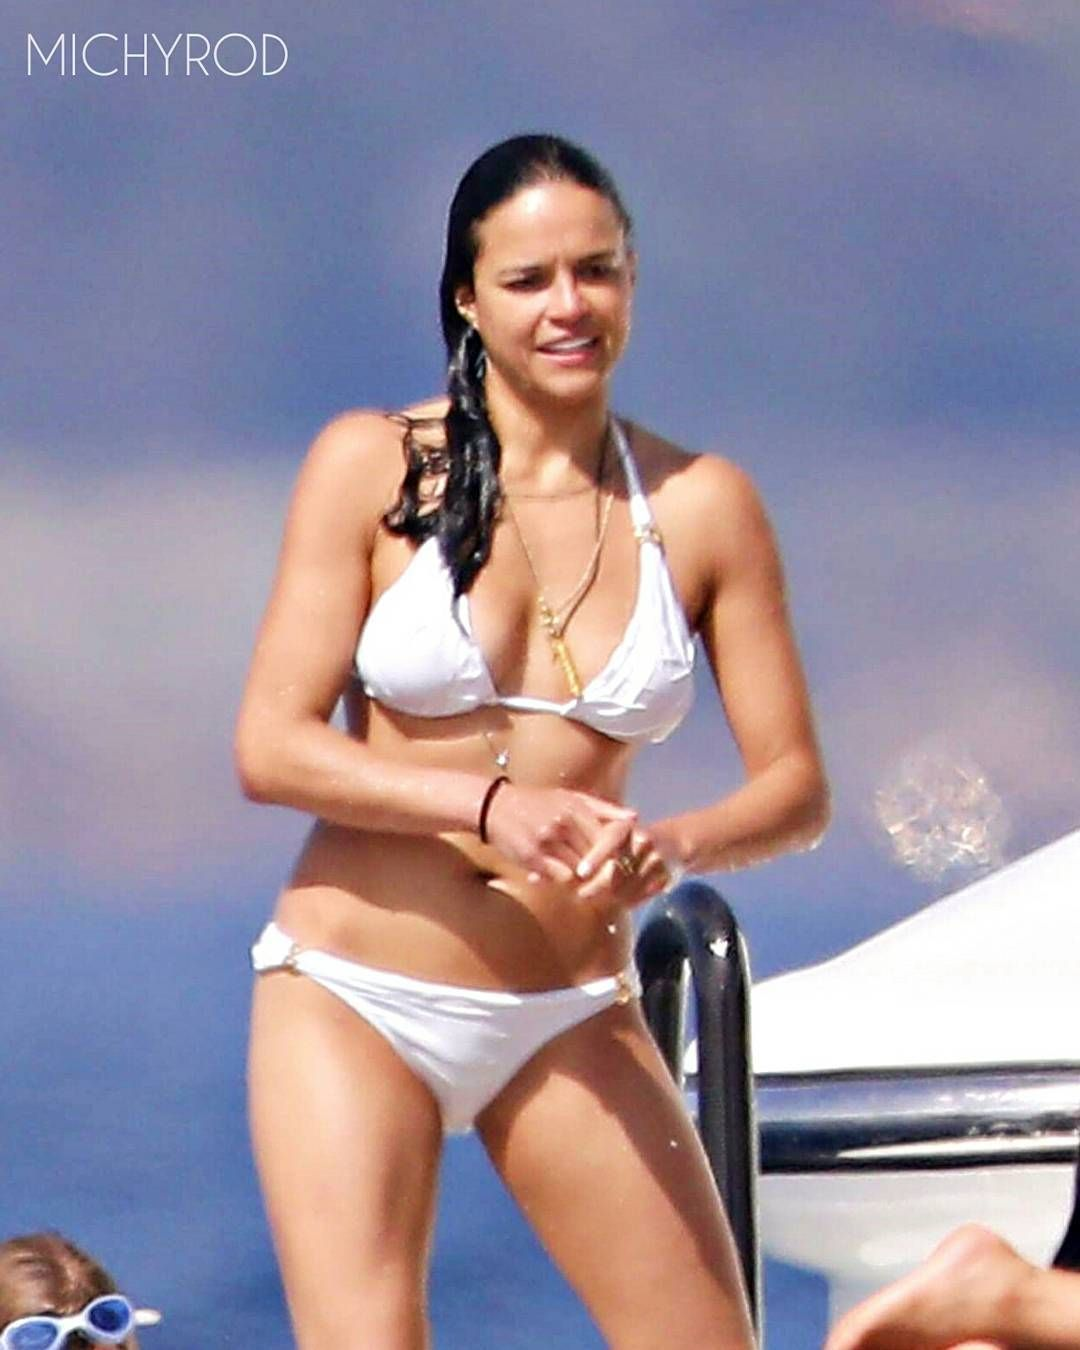 Michelle rodriguez panties nudes (22 photo), Ass Celebrites image